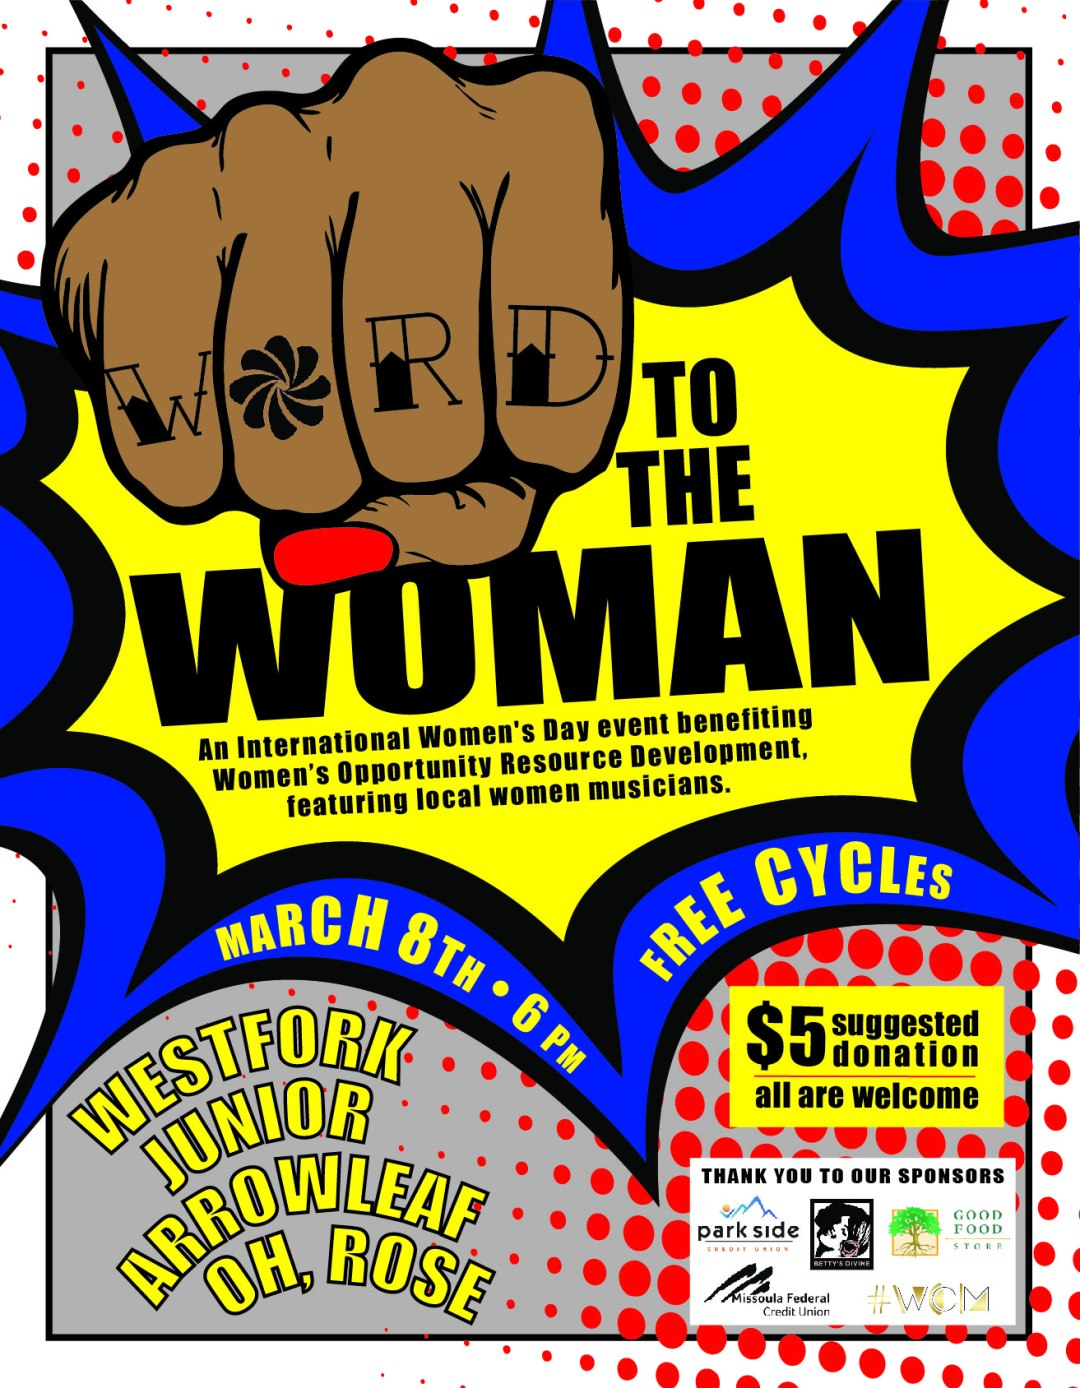 2019 WORD to the Woman Poster